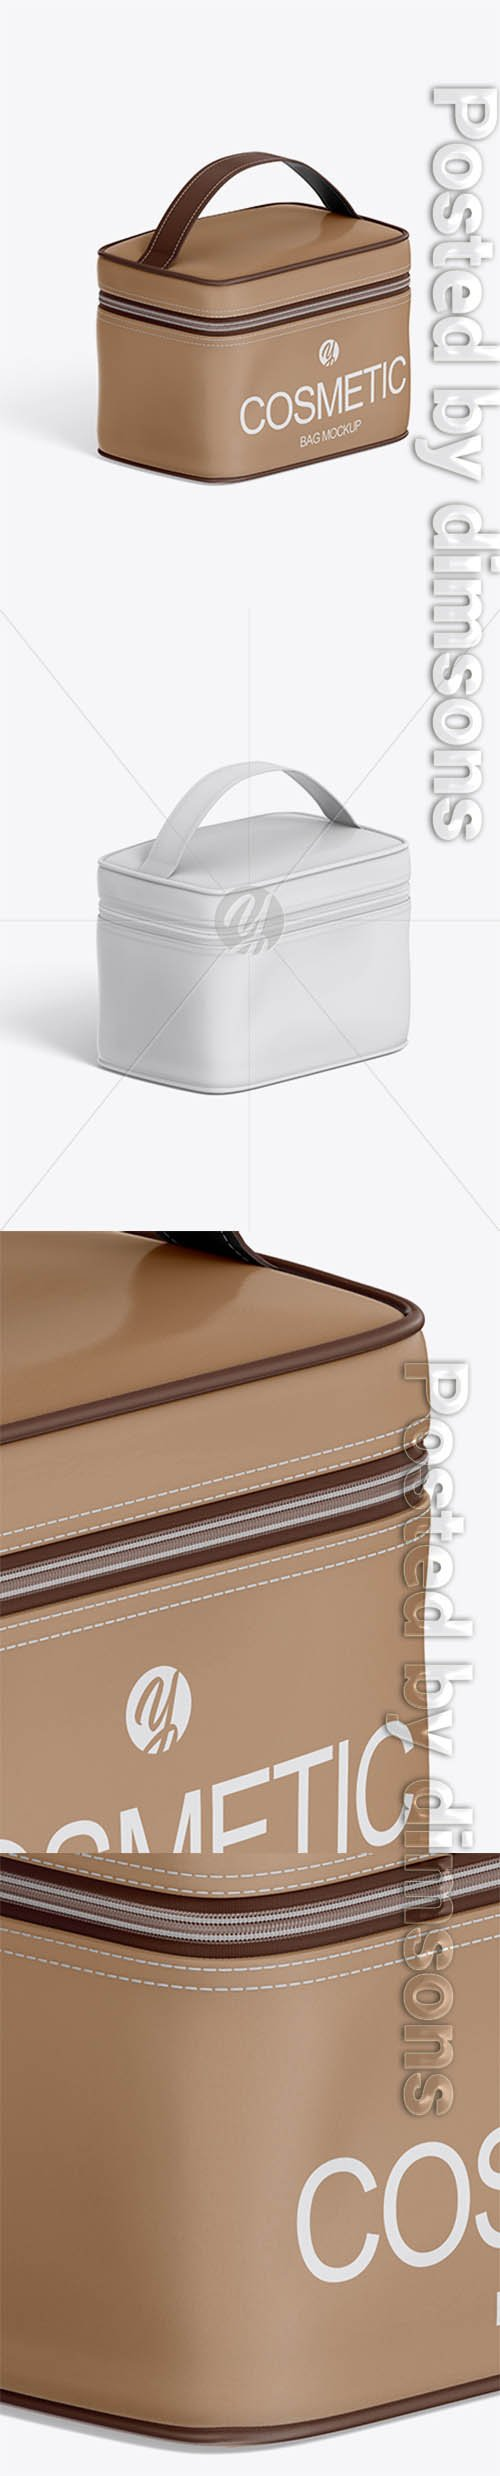 Cosmetic Bag Mockup - Half Side View 32425 TIF